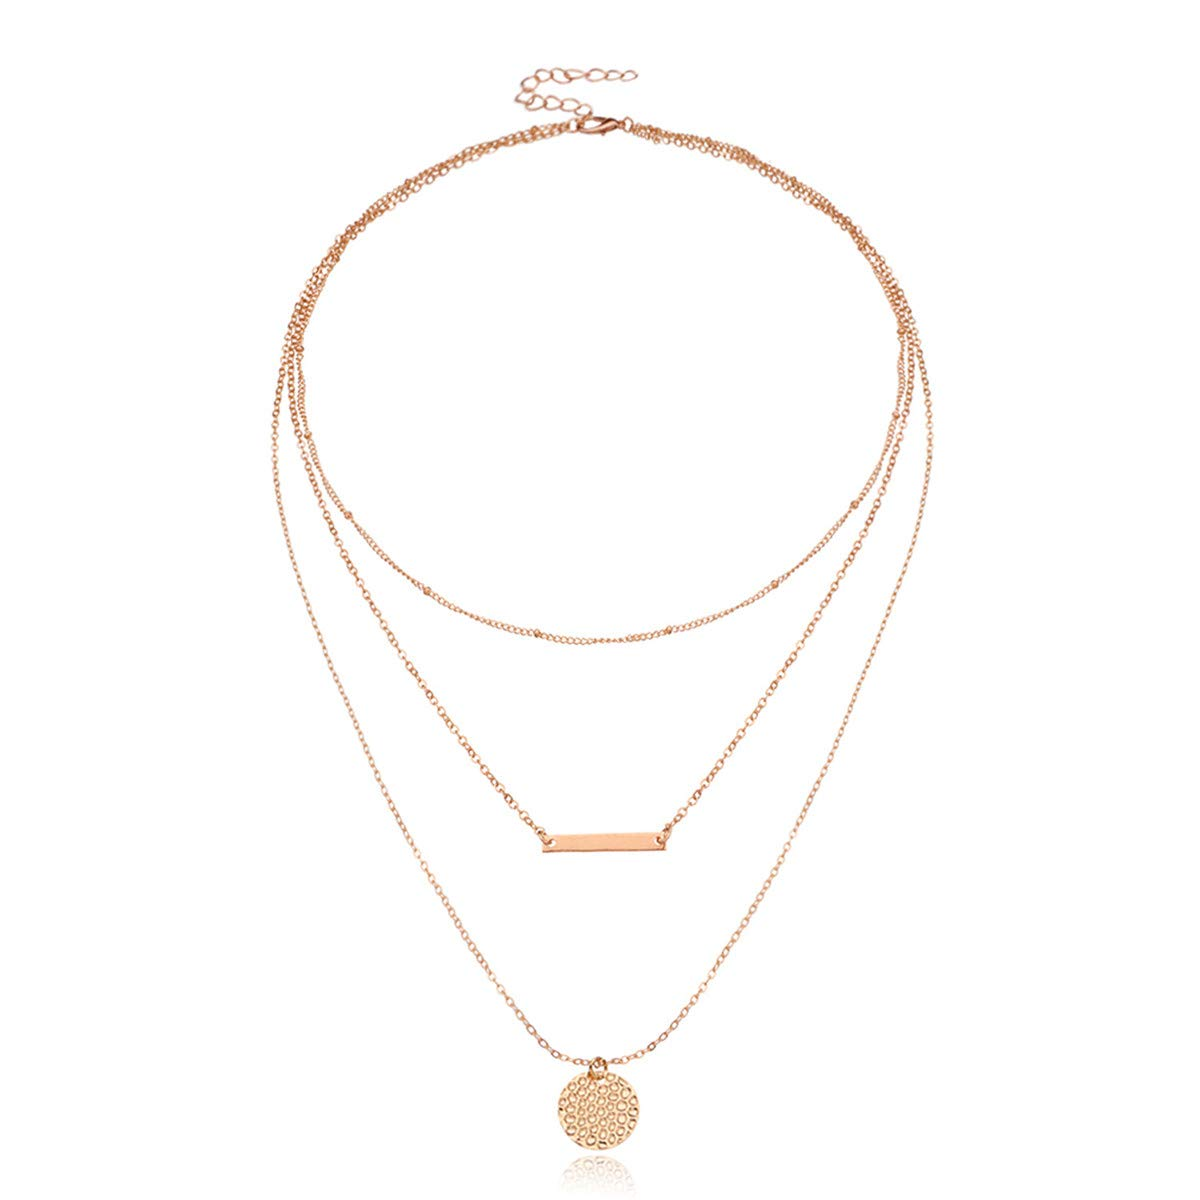 Beiswe Delicate Layered Choker Necklace for Teen Girls Women Y Pendant Necklace Bohemian Multilayer Bar Disc Necklace Gifts (Gold)